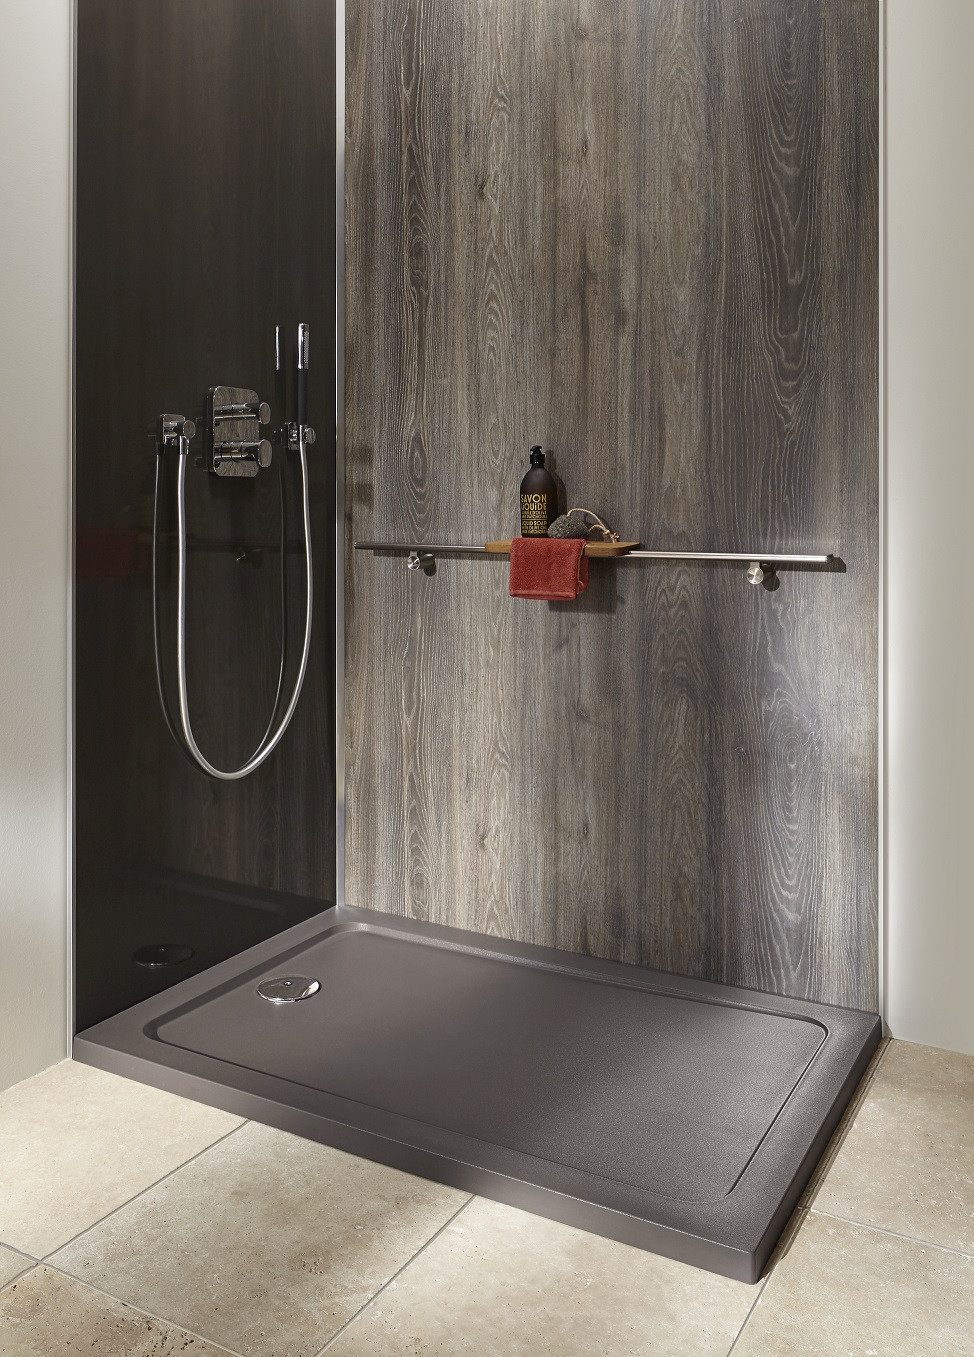 Receveur douche couleur anthracite gris taupe jacob for Carrelage 90 x 90